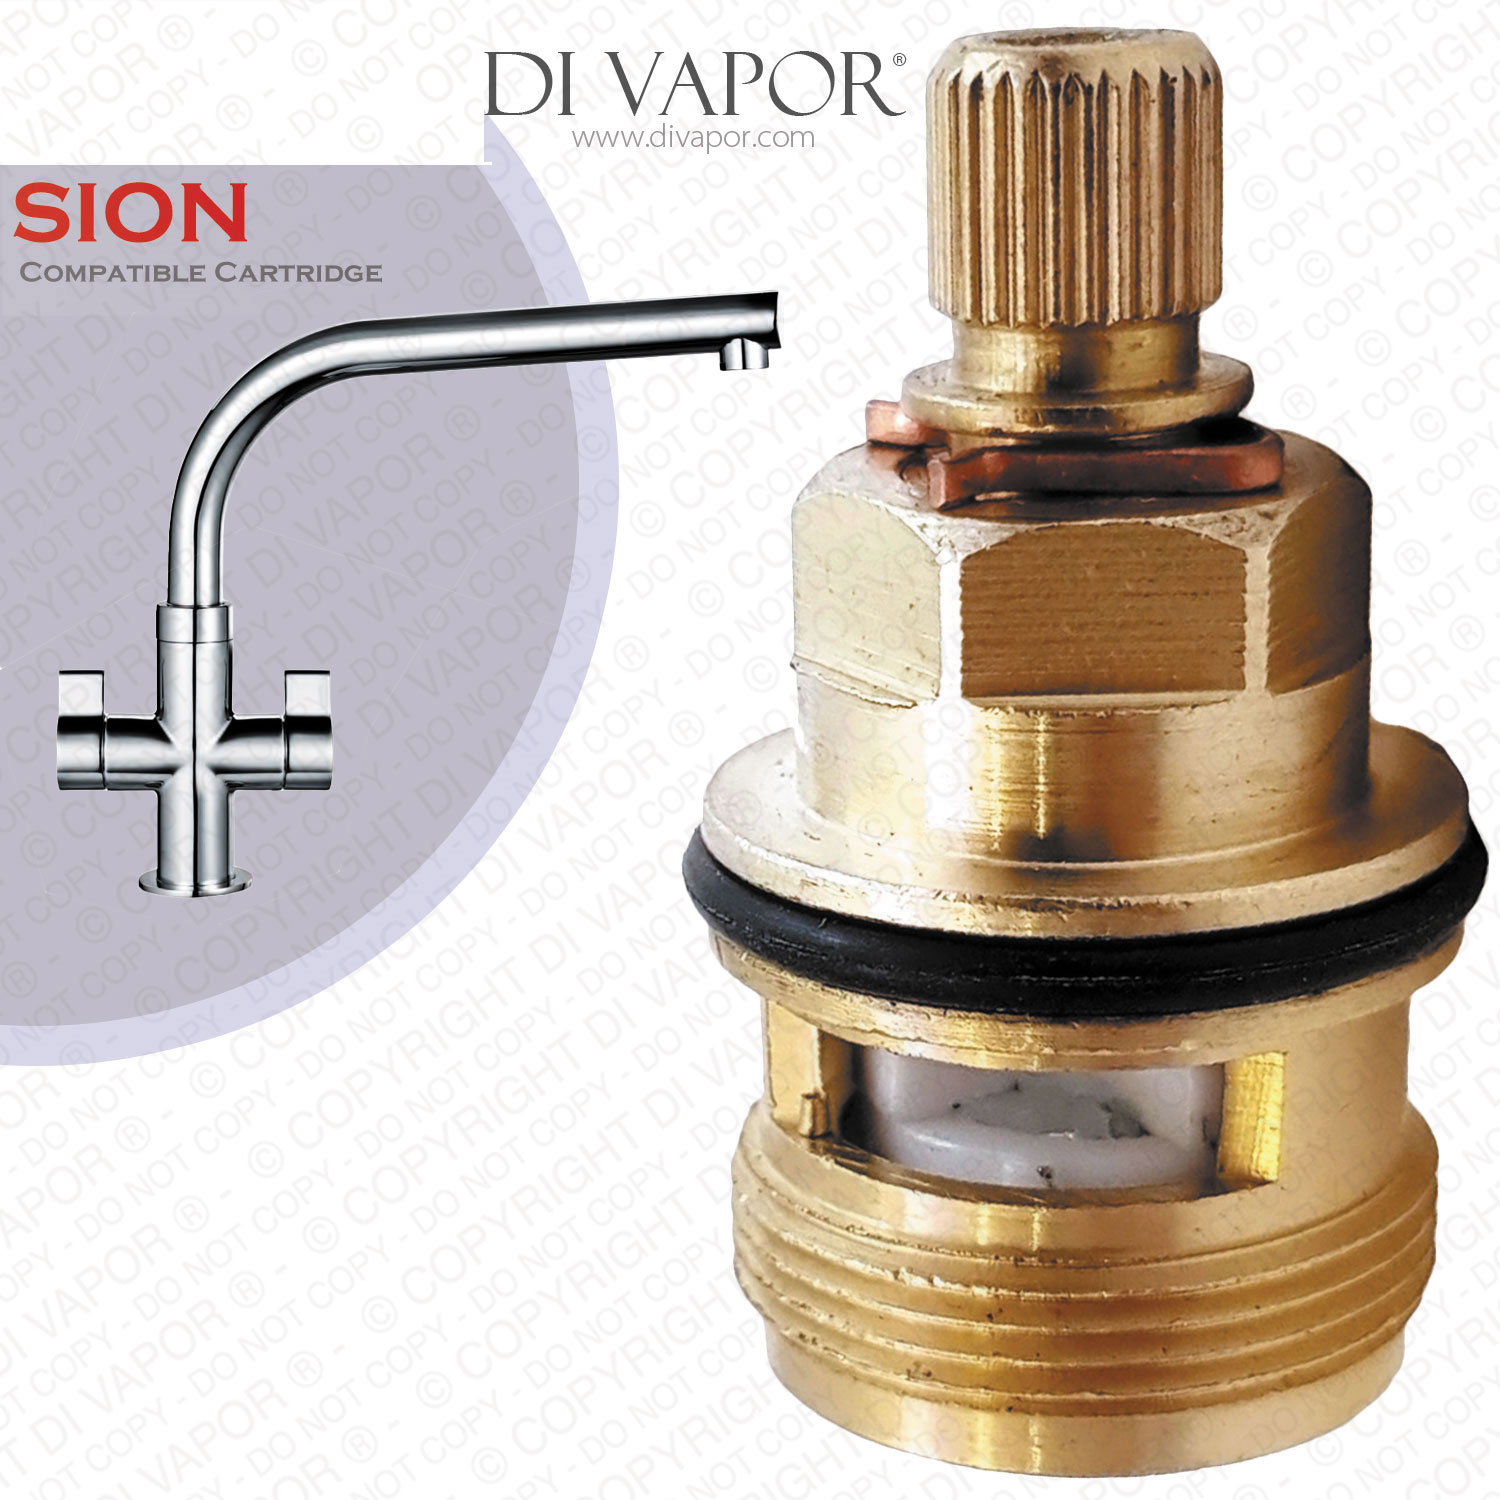 Pair of Chambers 26x 1,90//2,125 Valve French 48 mm import